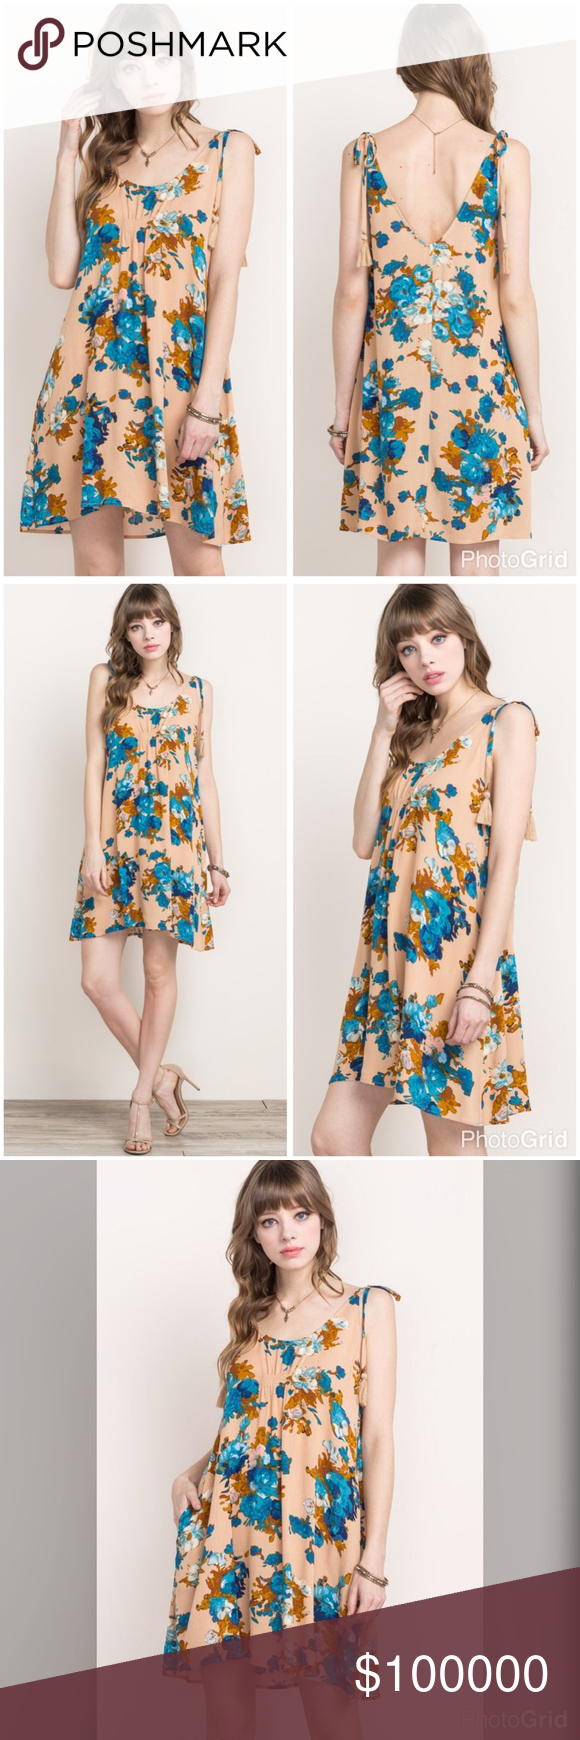 Floral self tie tassel swing dress with pockets! Stunning in sand and ocean blues this dress is flattering in a swing cut light pleating at bust with top tie tassels and pockets! Dresses